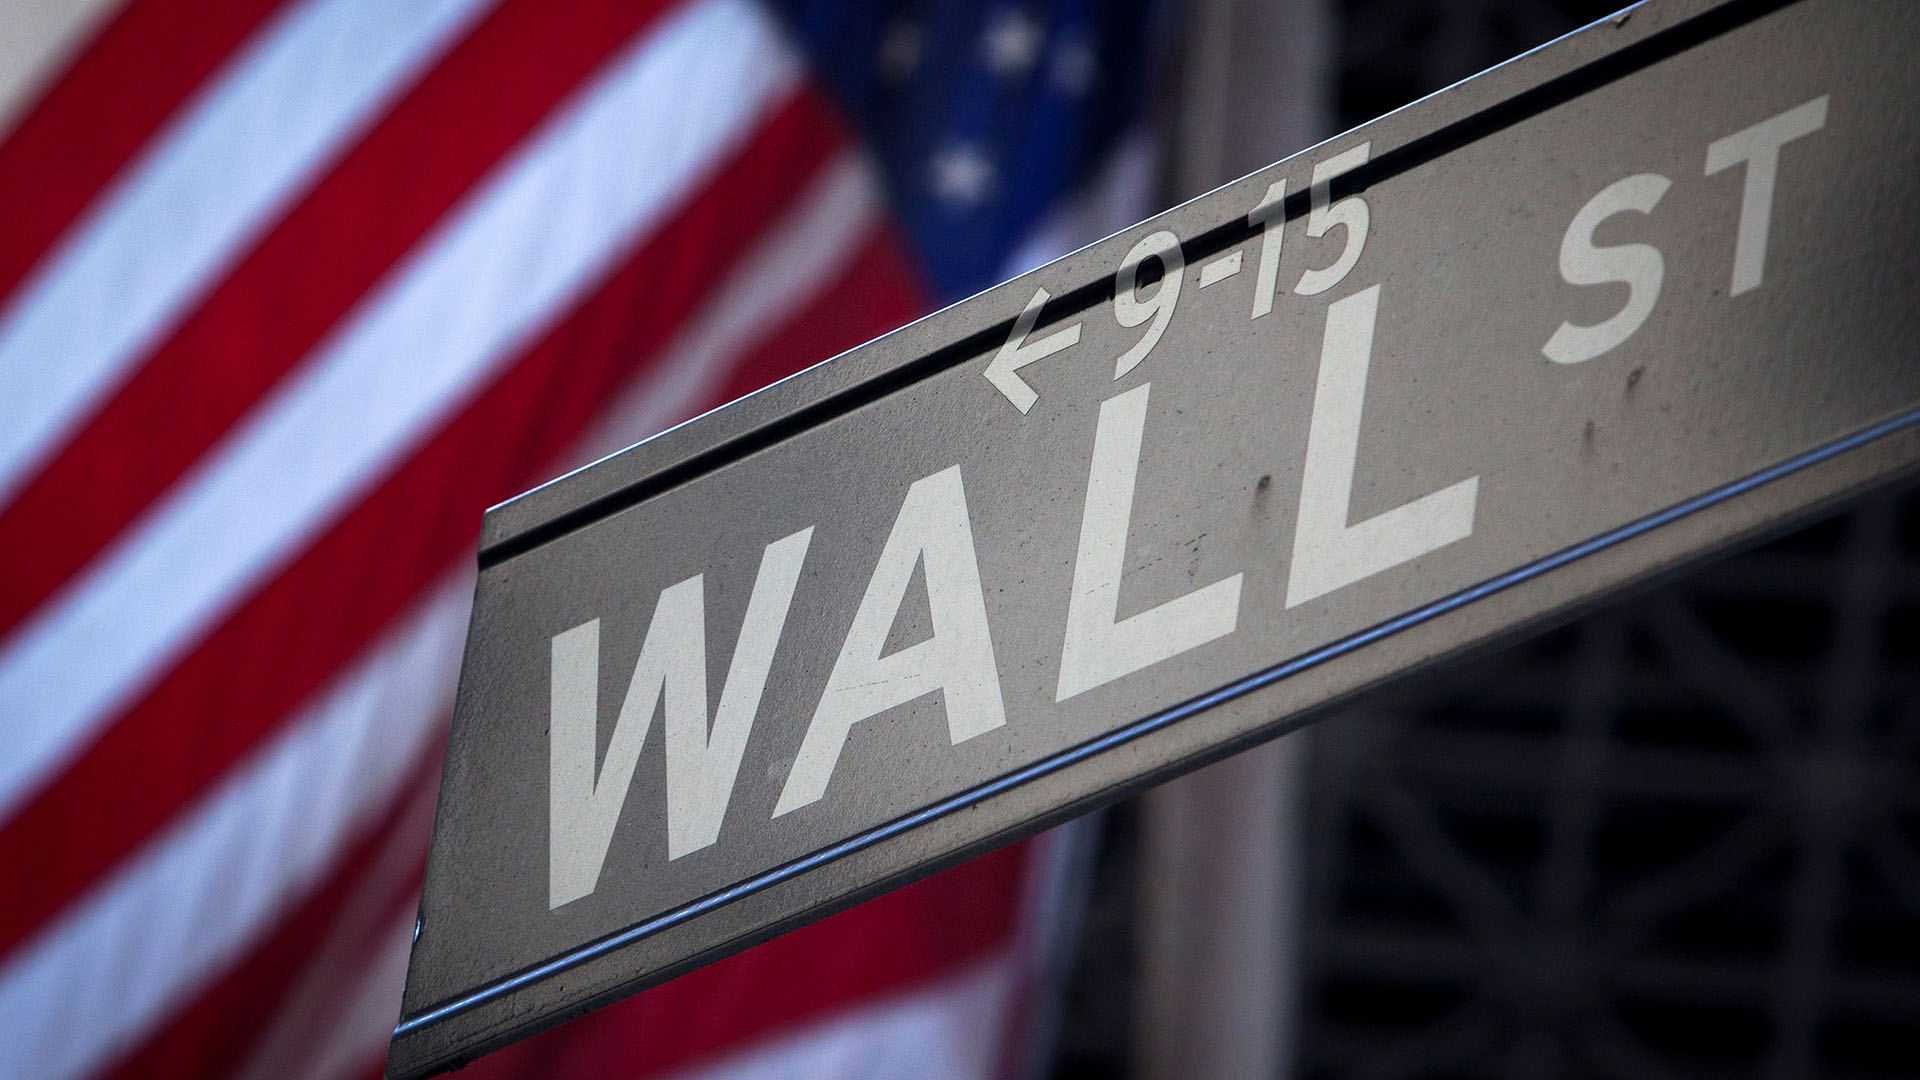 Where do the presidential candidates stand on Wall Street regulation?